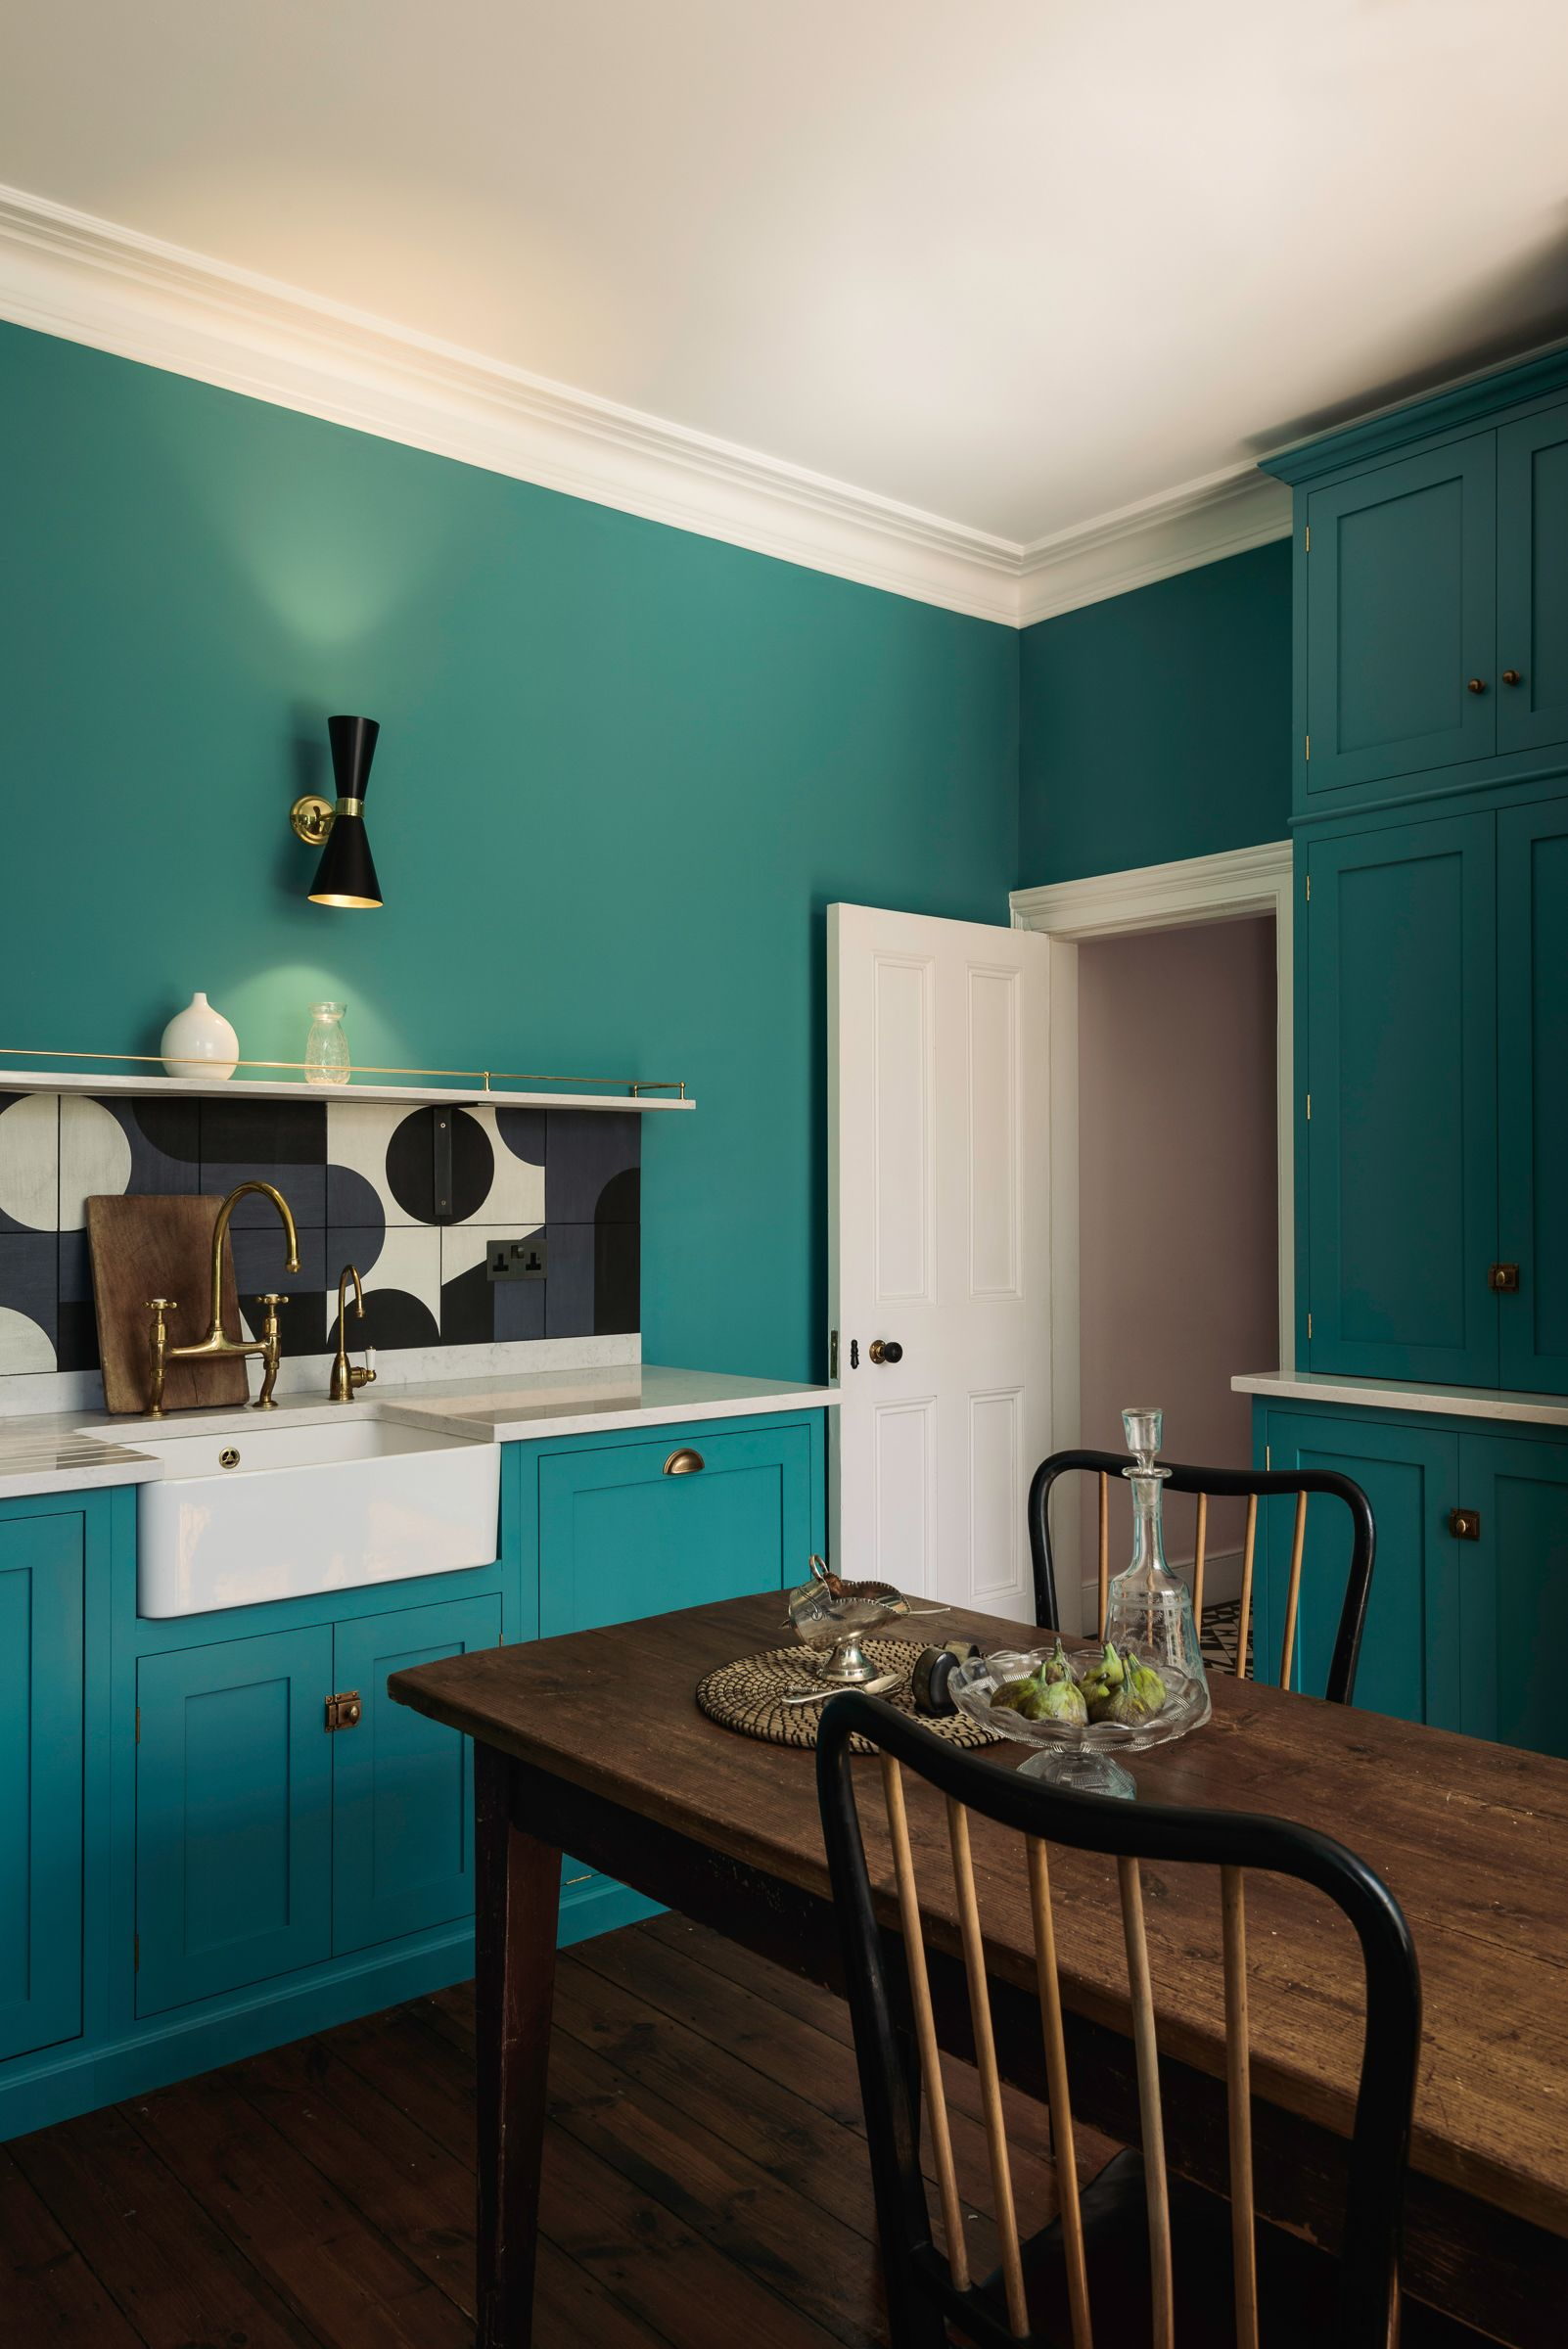 These are Our Favorite Kitchens of 2017 | Kitchens | Pinterest ...